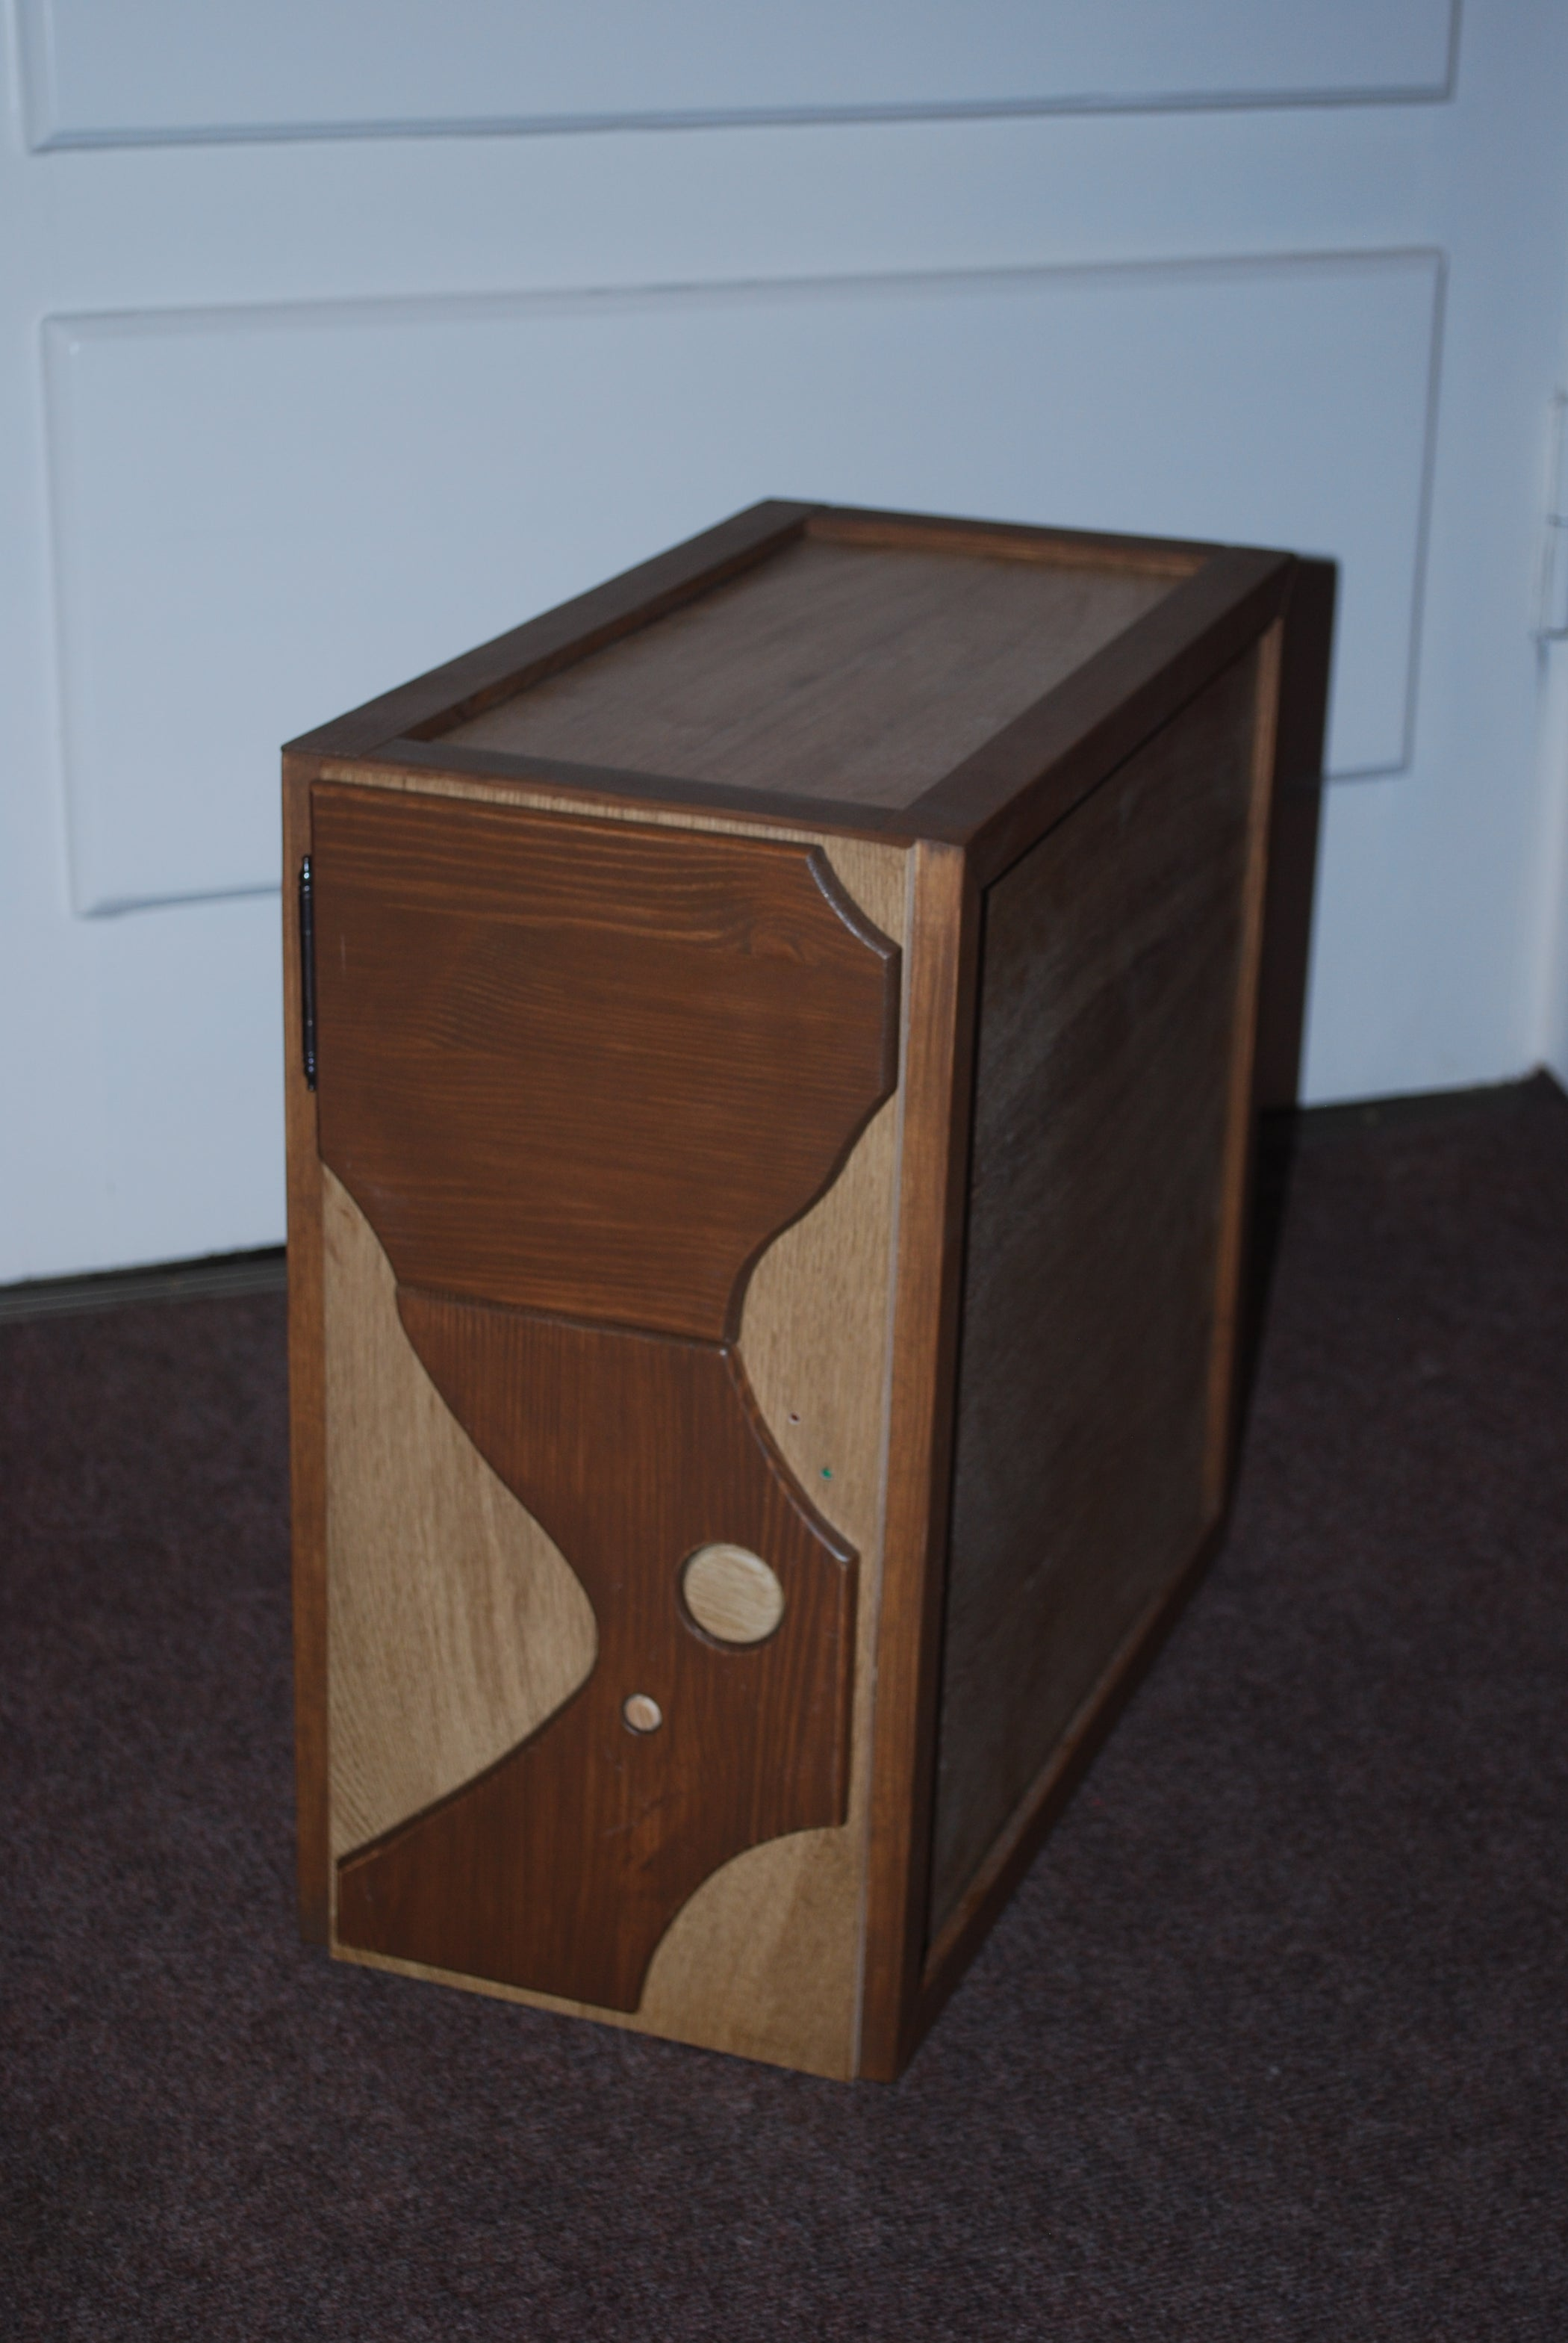 Wooden Pc Case - Instructables